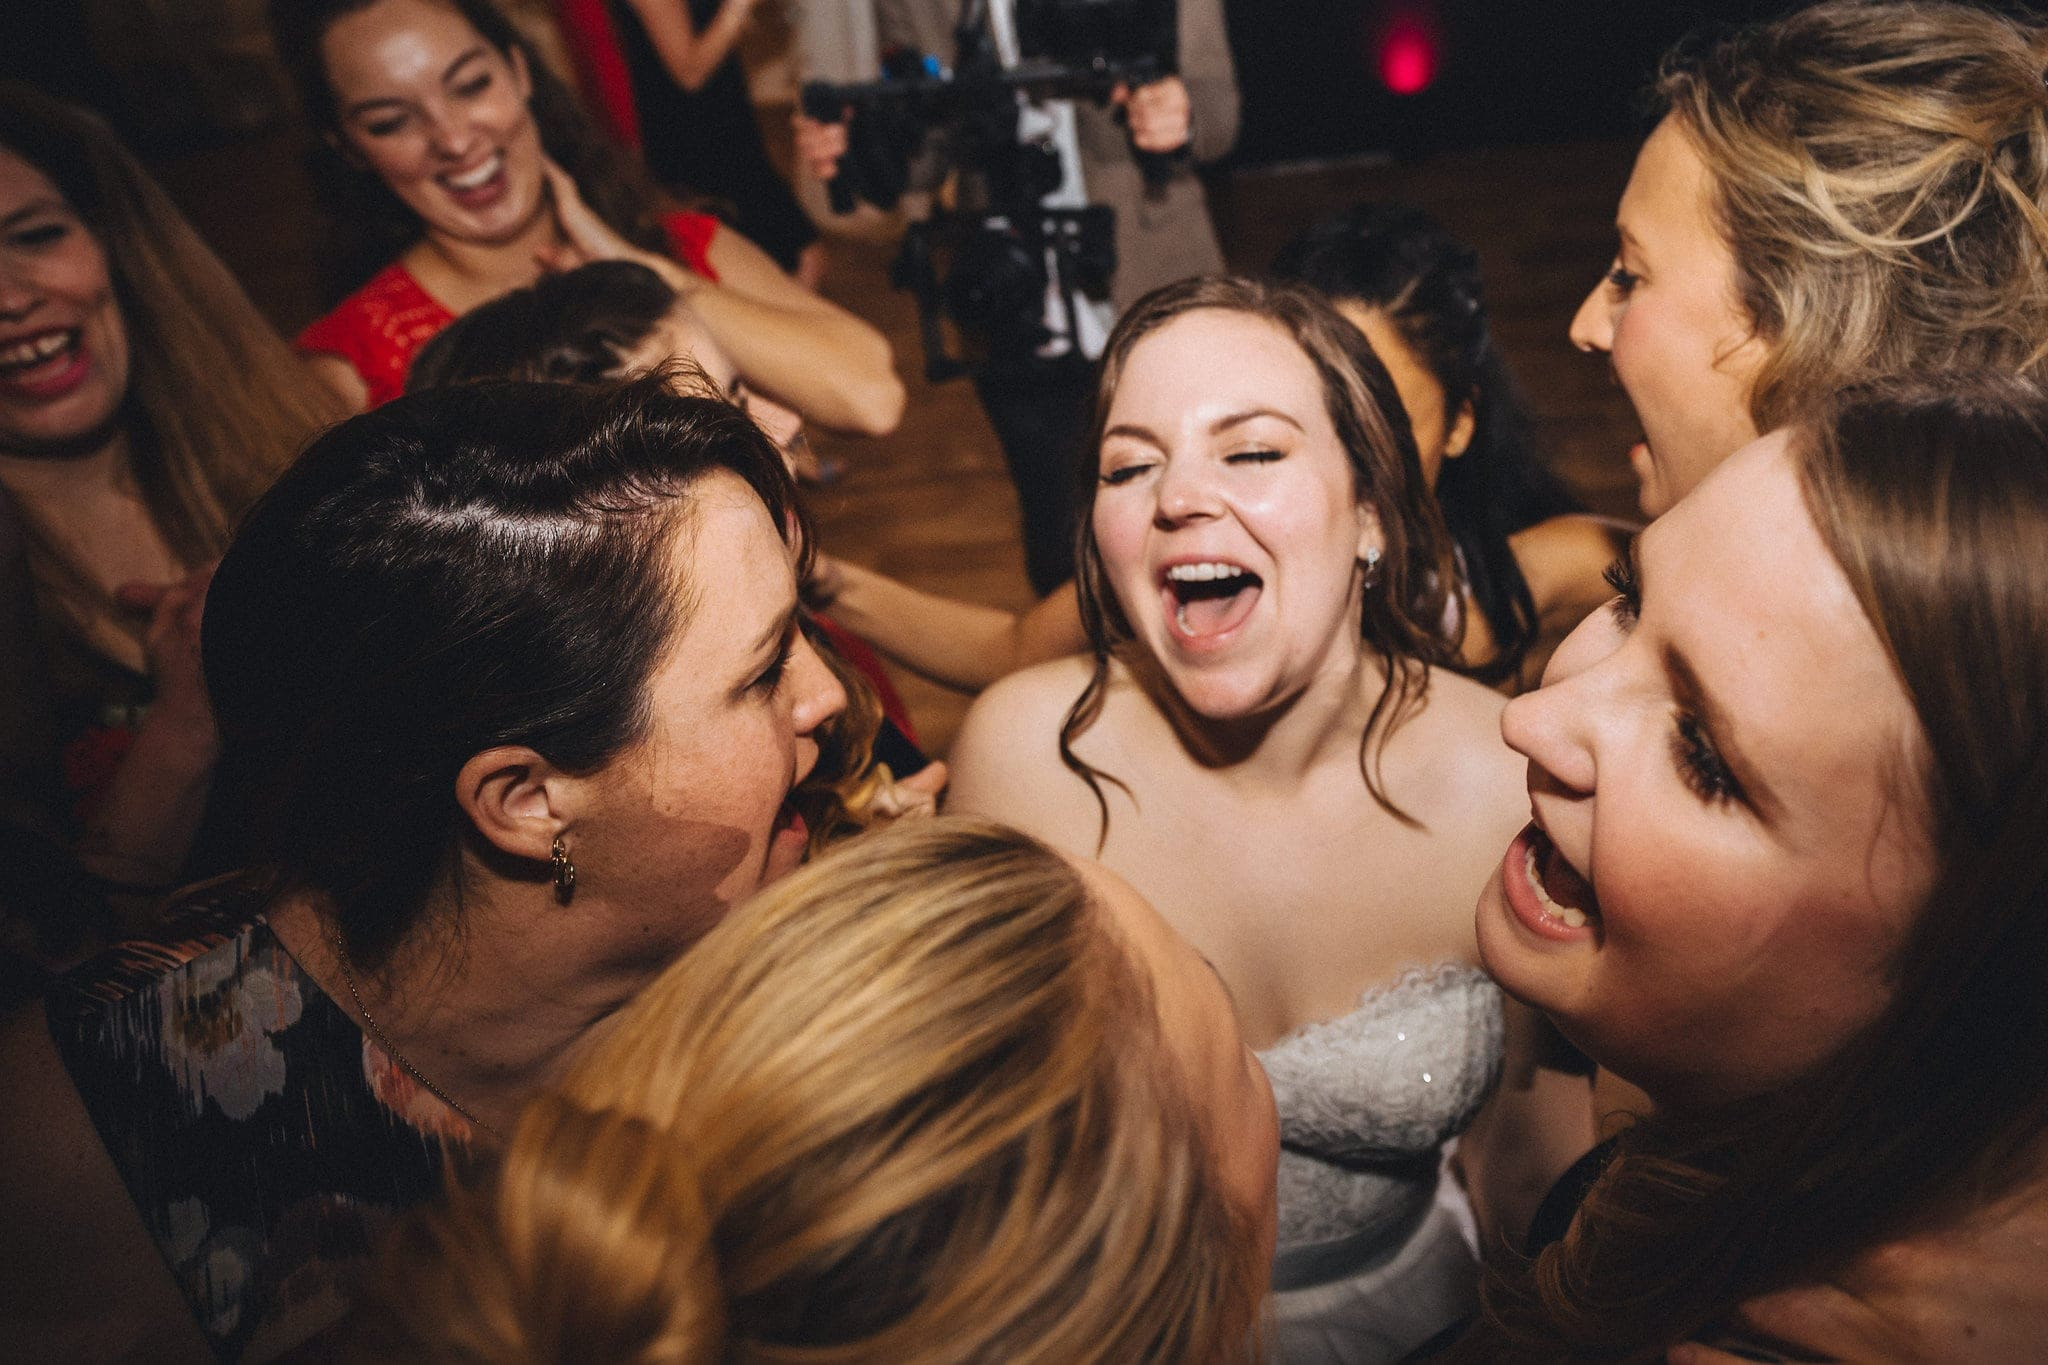 Bride sings loudly with her bridesmaids